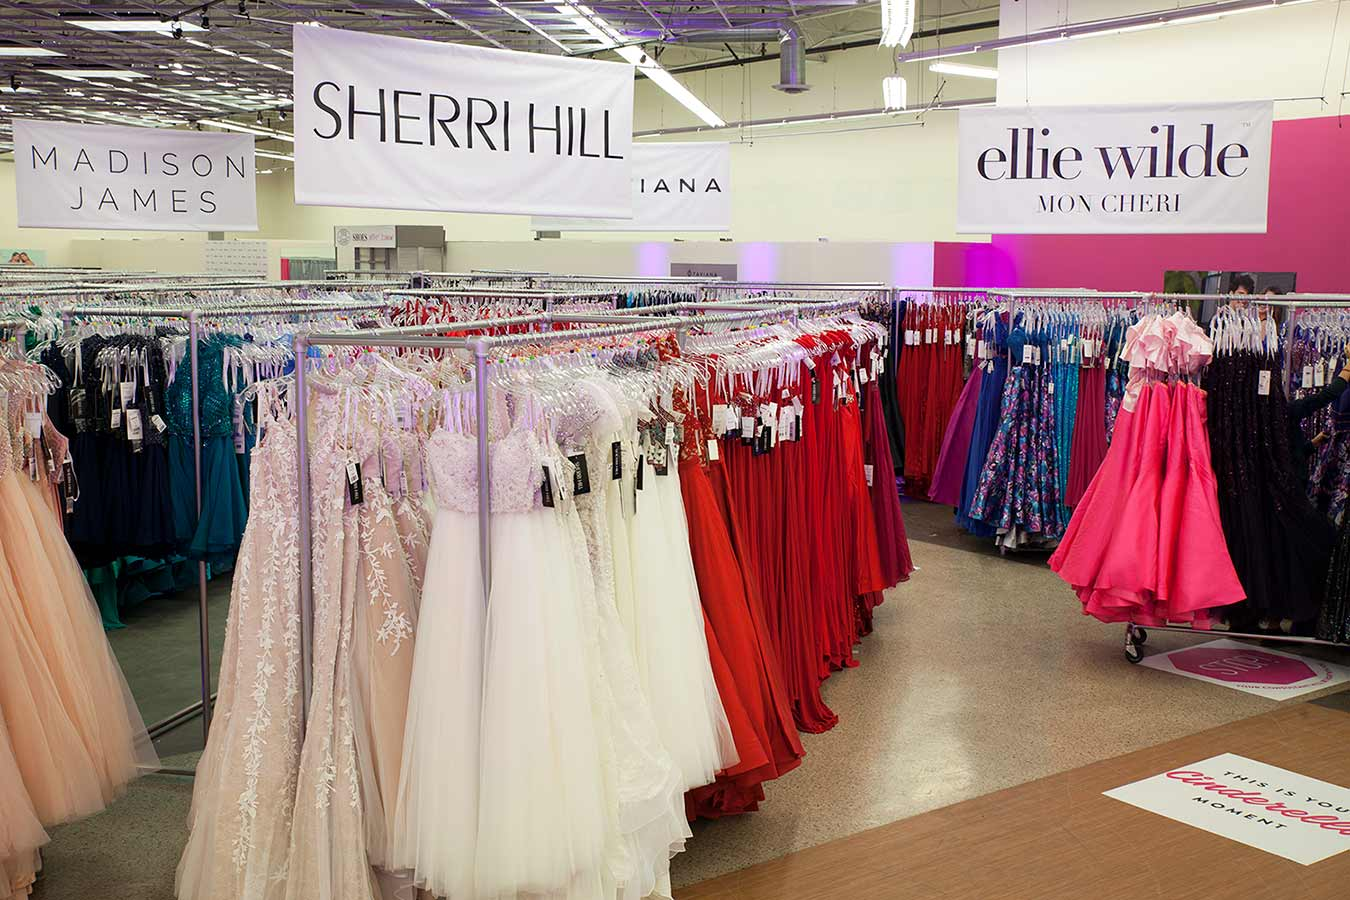 What are all the prom dress stores in the Mall of Georgia?